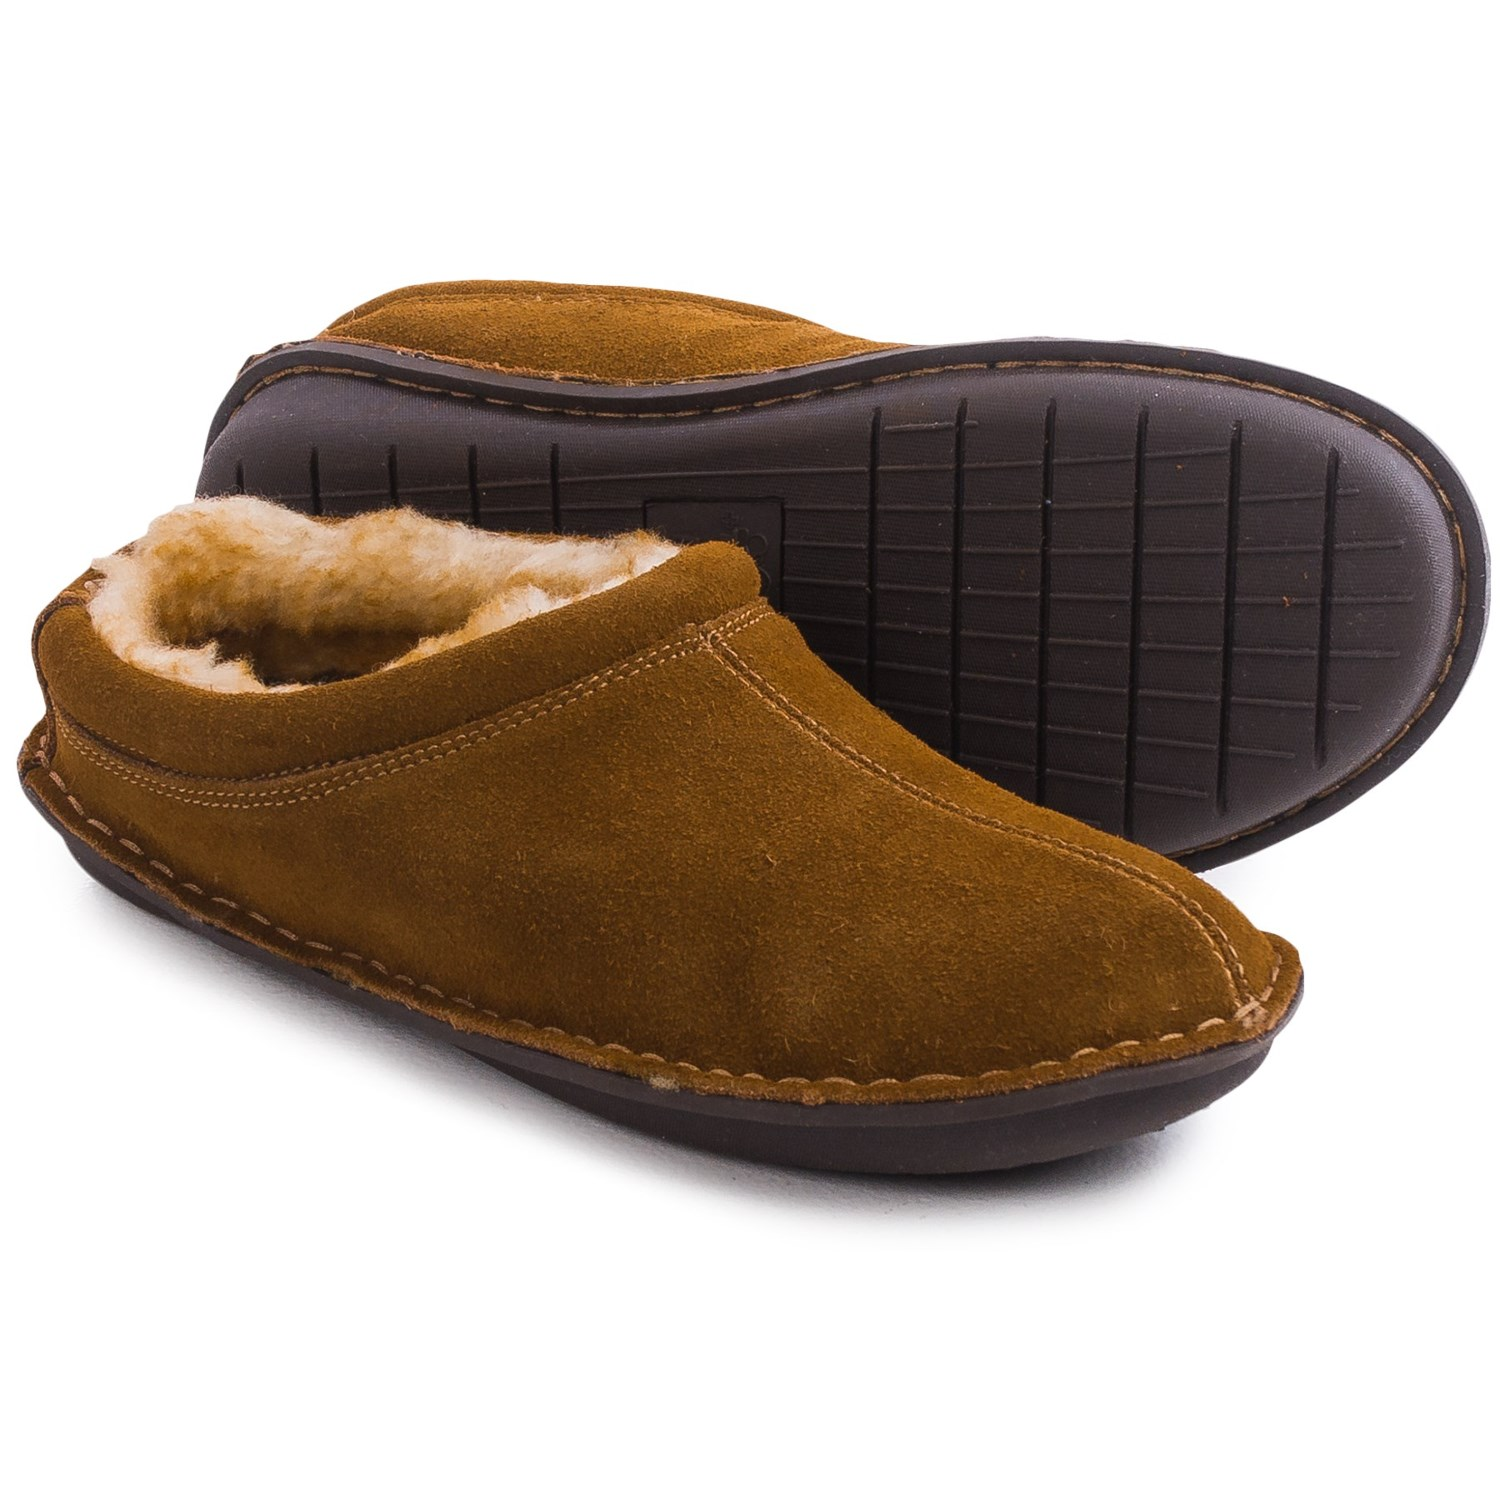 Mens Suede Slippers Sale: Save Up to 40% Off! Shop tennesseemyblogw0.cf's huge selection of Suede Slippers for Men - Over 30 styles available. FREE Shipping & Exchanges, and a % price guarantee!